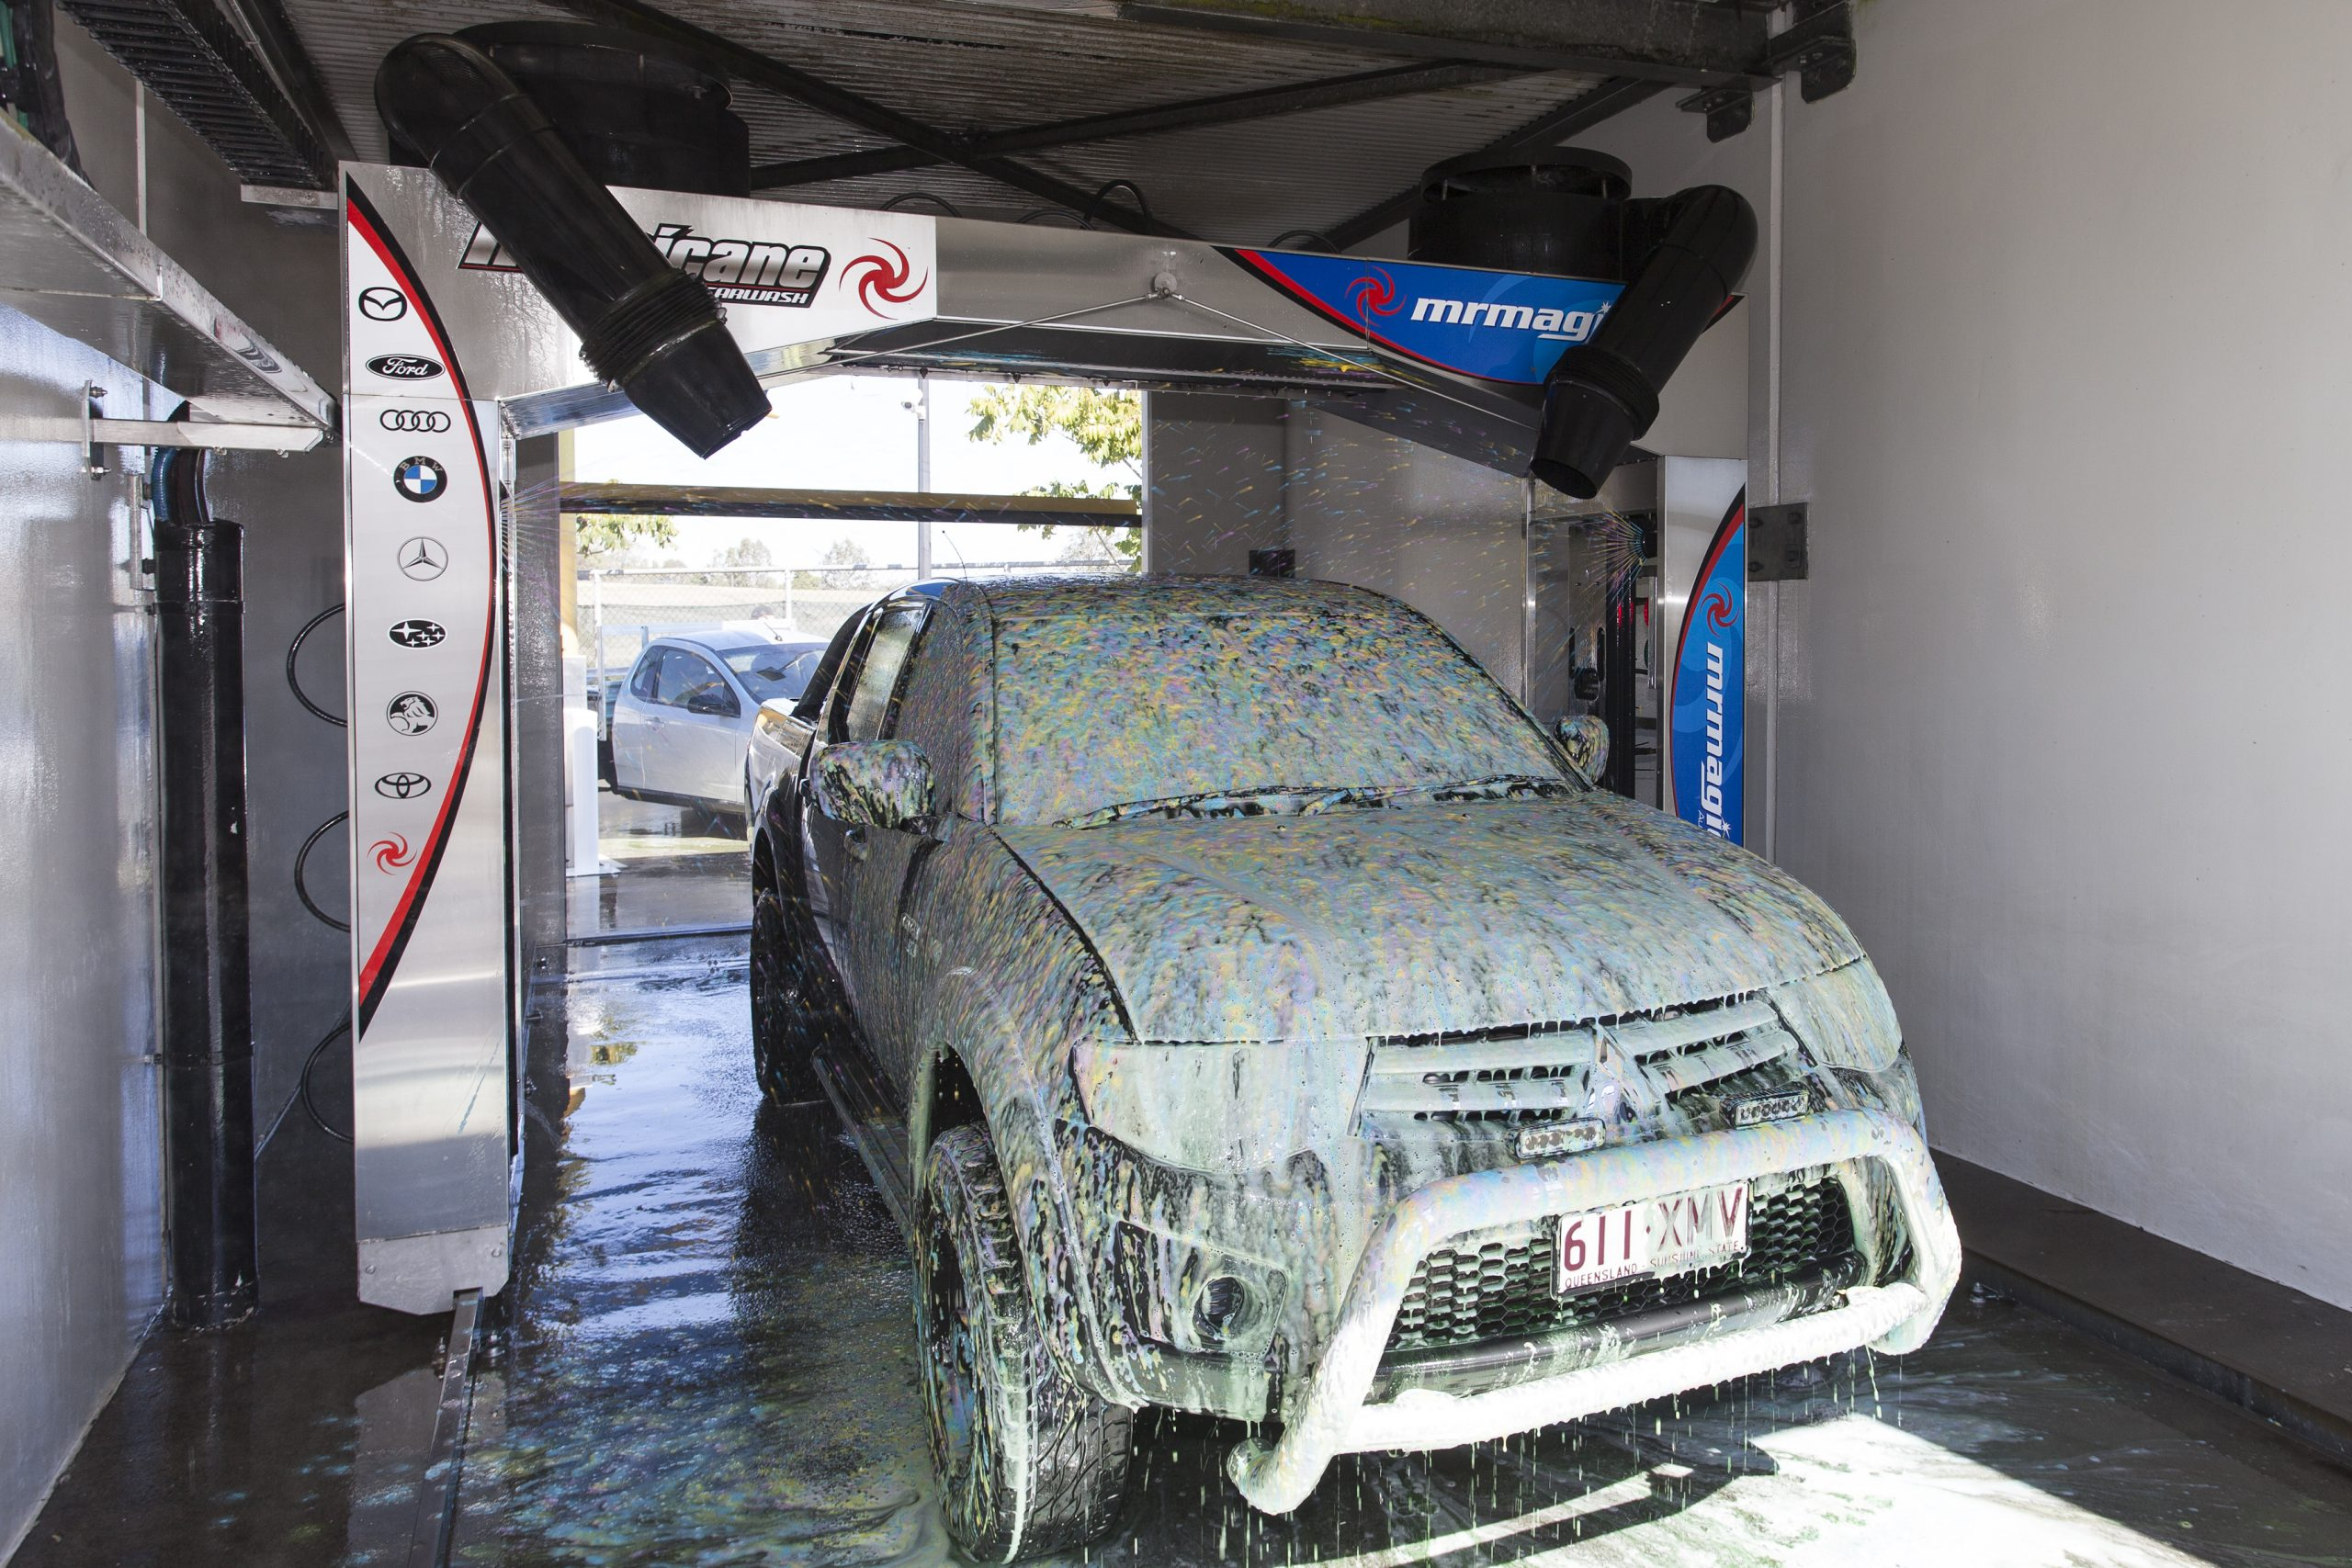 Automatic car wash Jimboomba